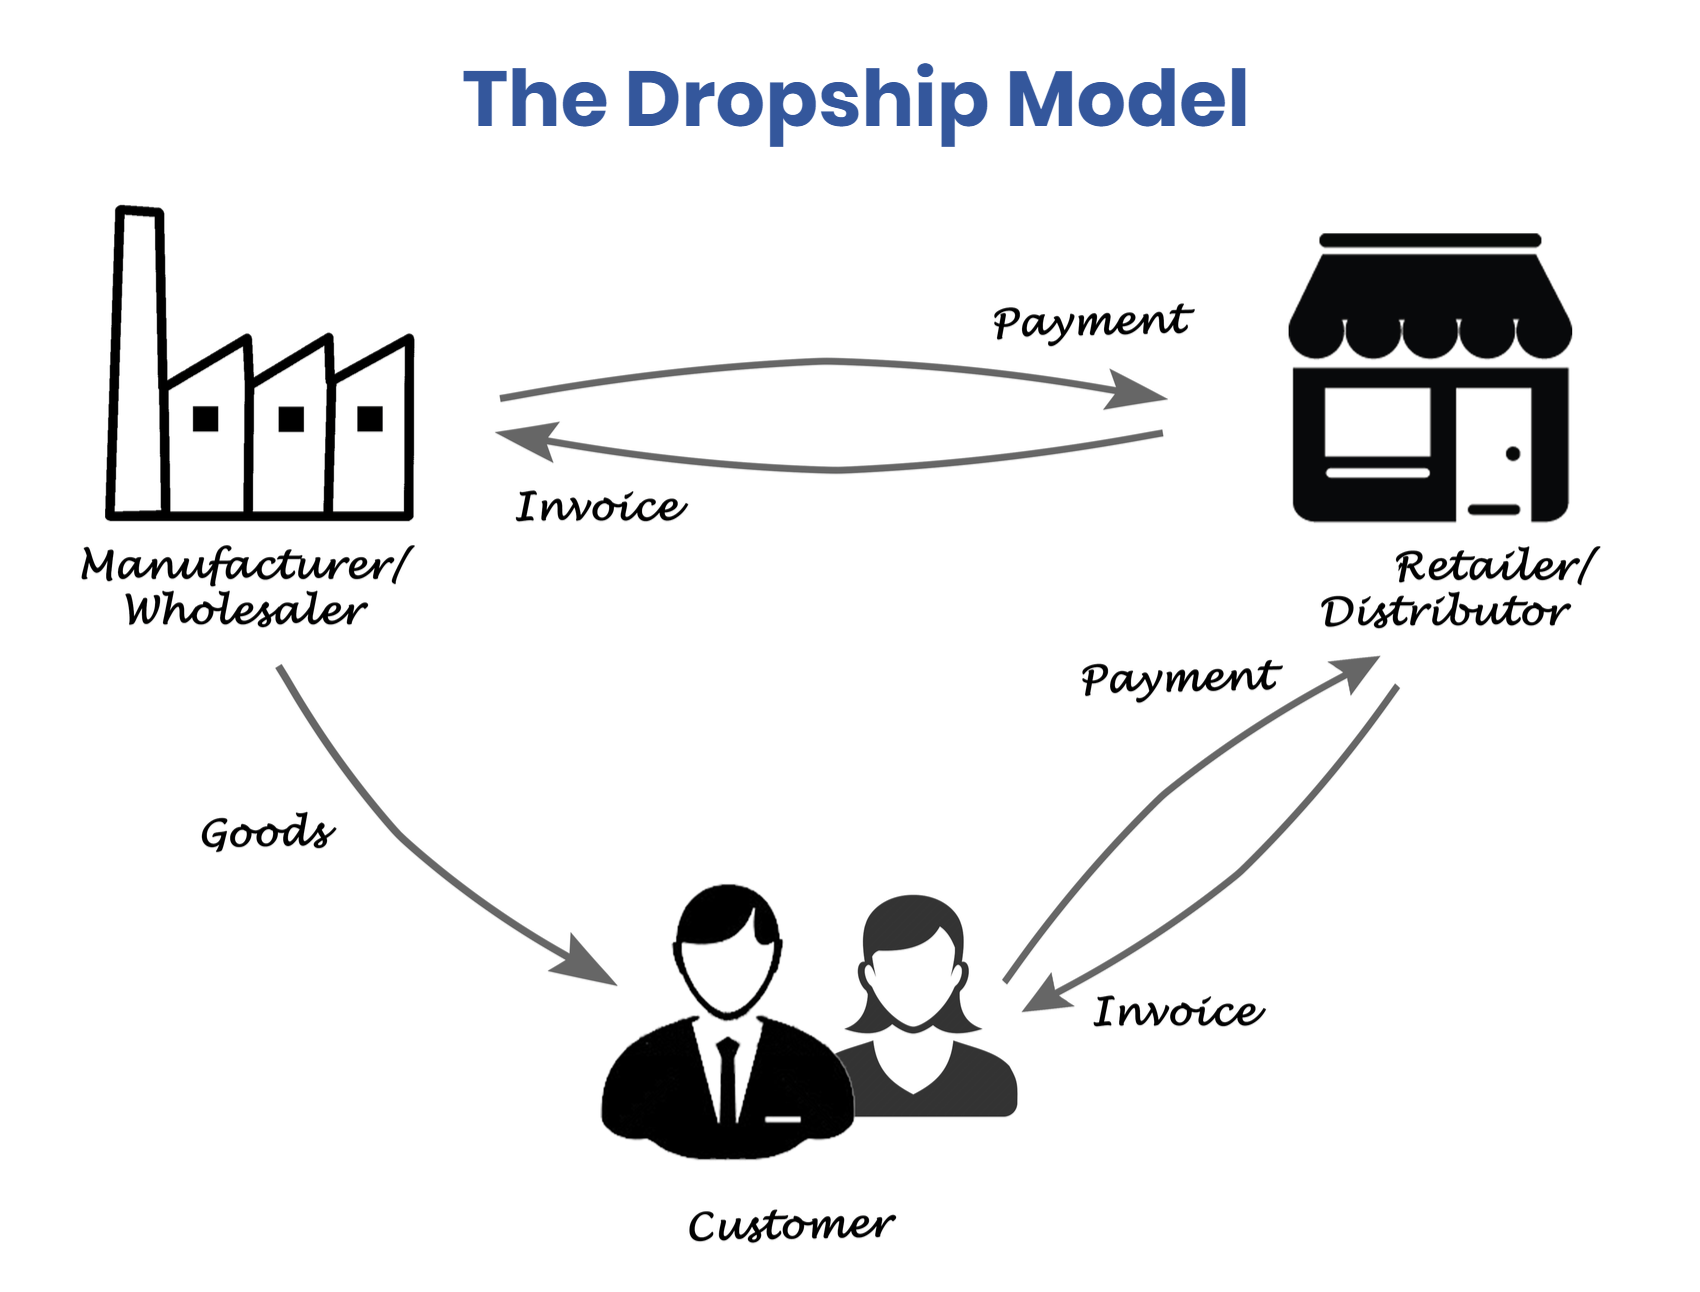 How To Start A Dropshipping Business In 5 Simple Steps